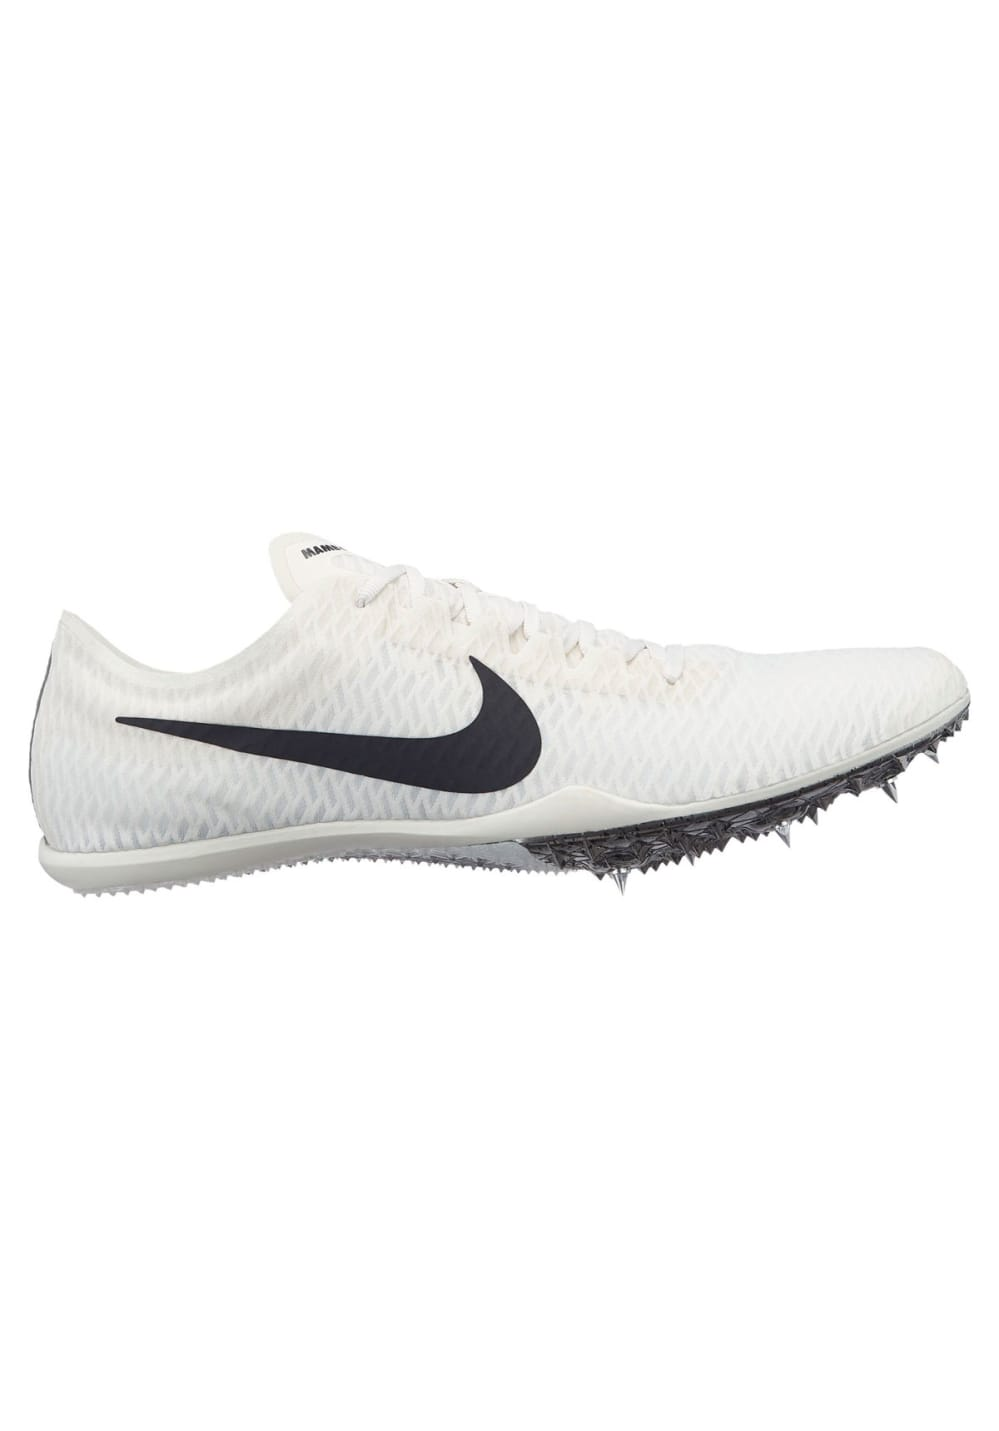 sale retailer 507f0 38f11 Nike Zoom Mamba V - Zapatillas de atletismo - Blanco  21RUN